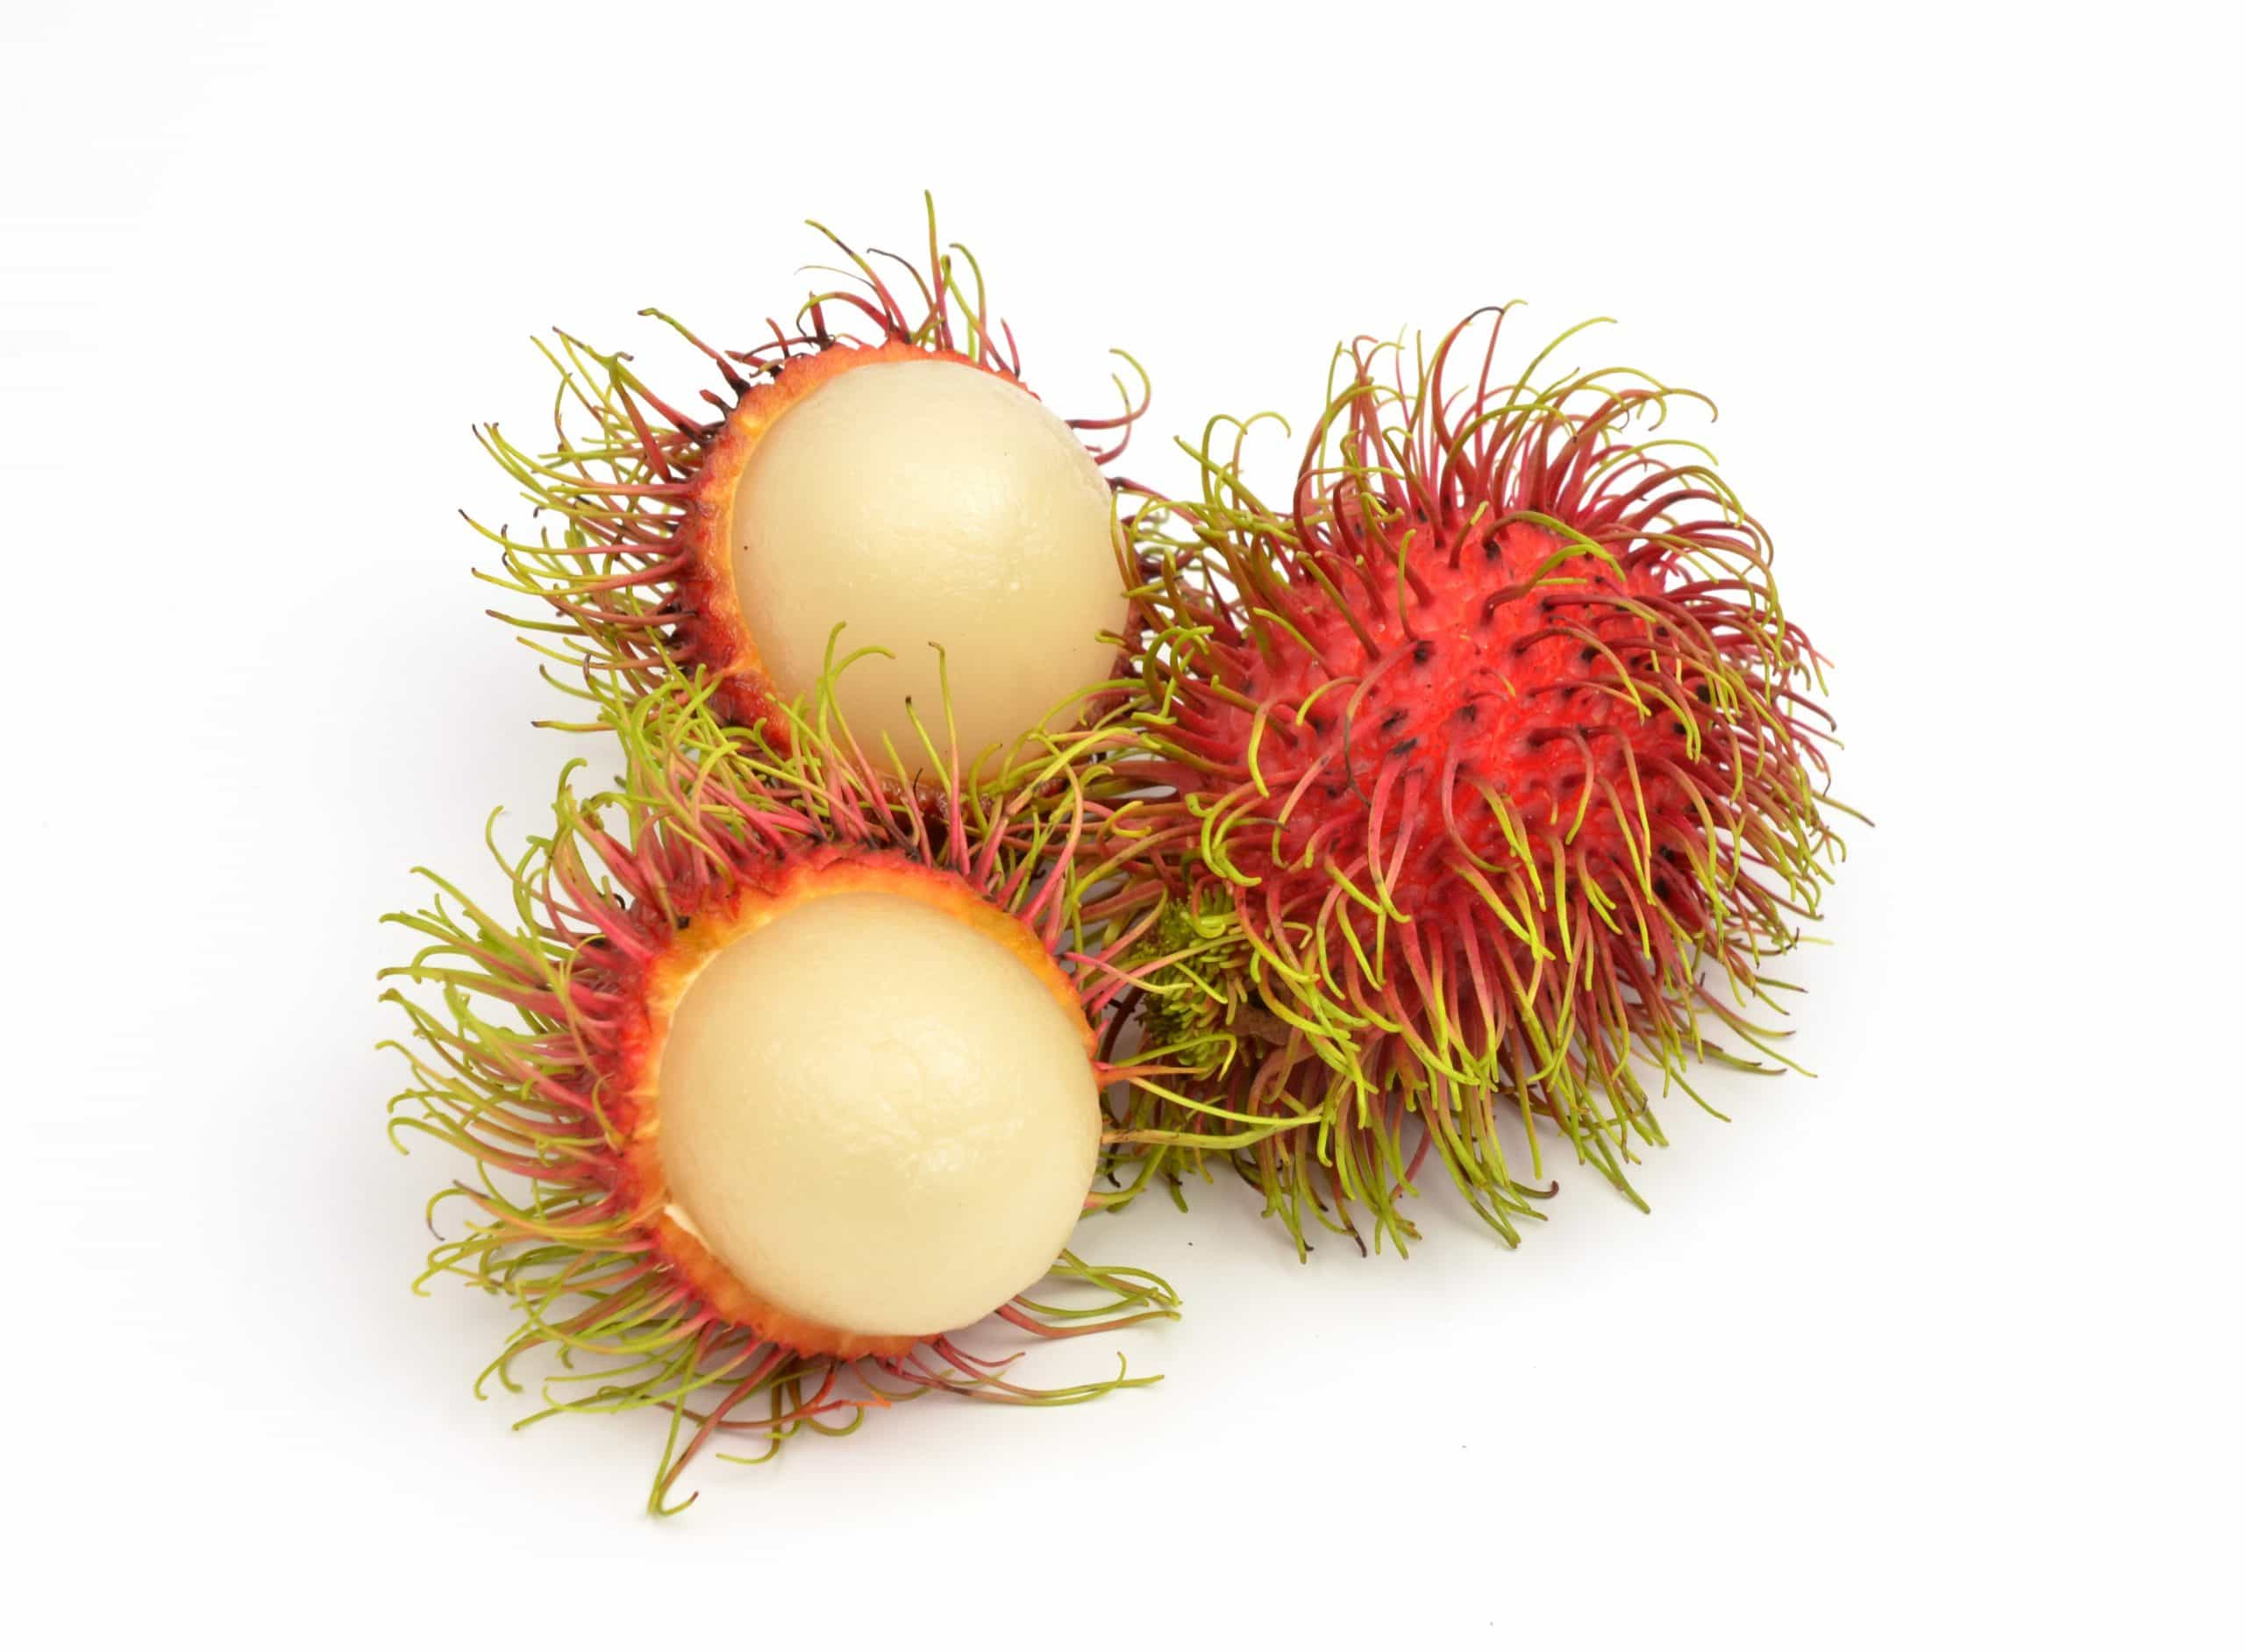 rambutan fruits isolated on white background